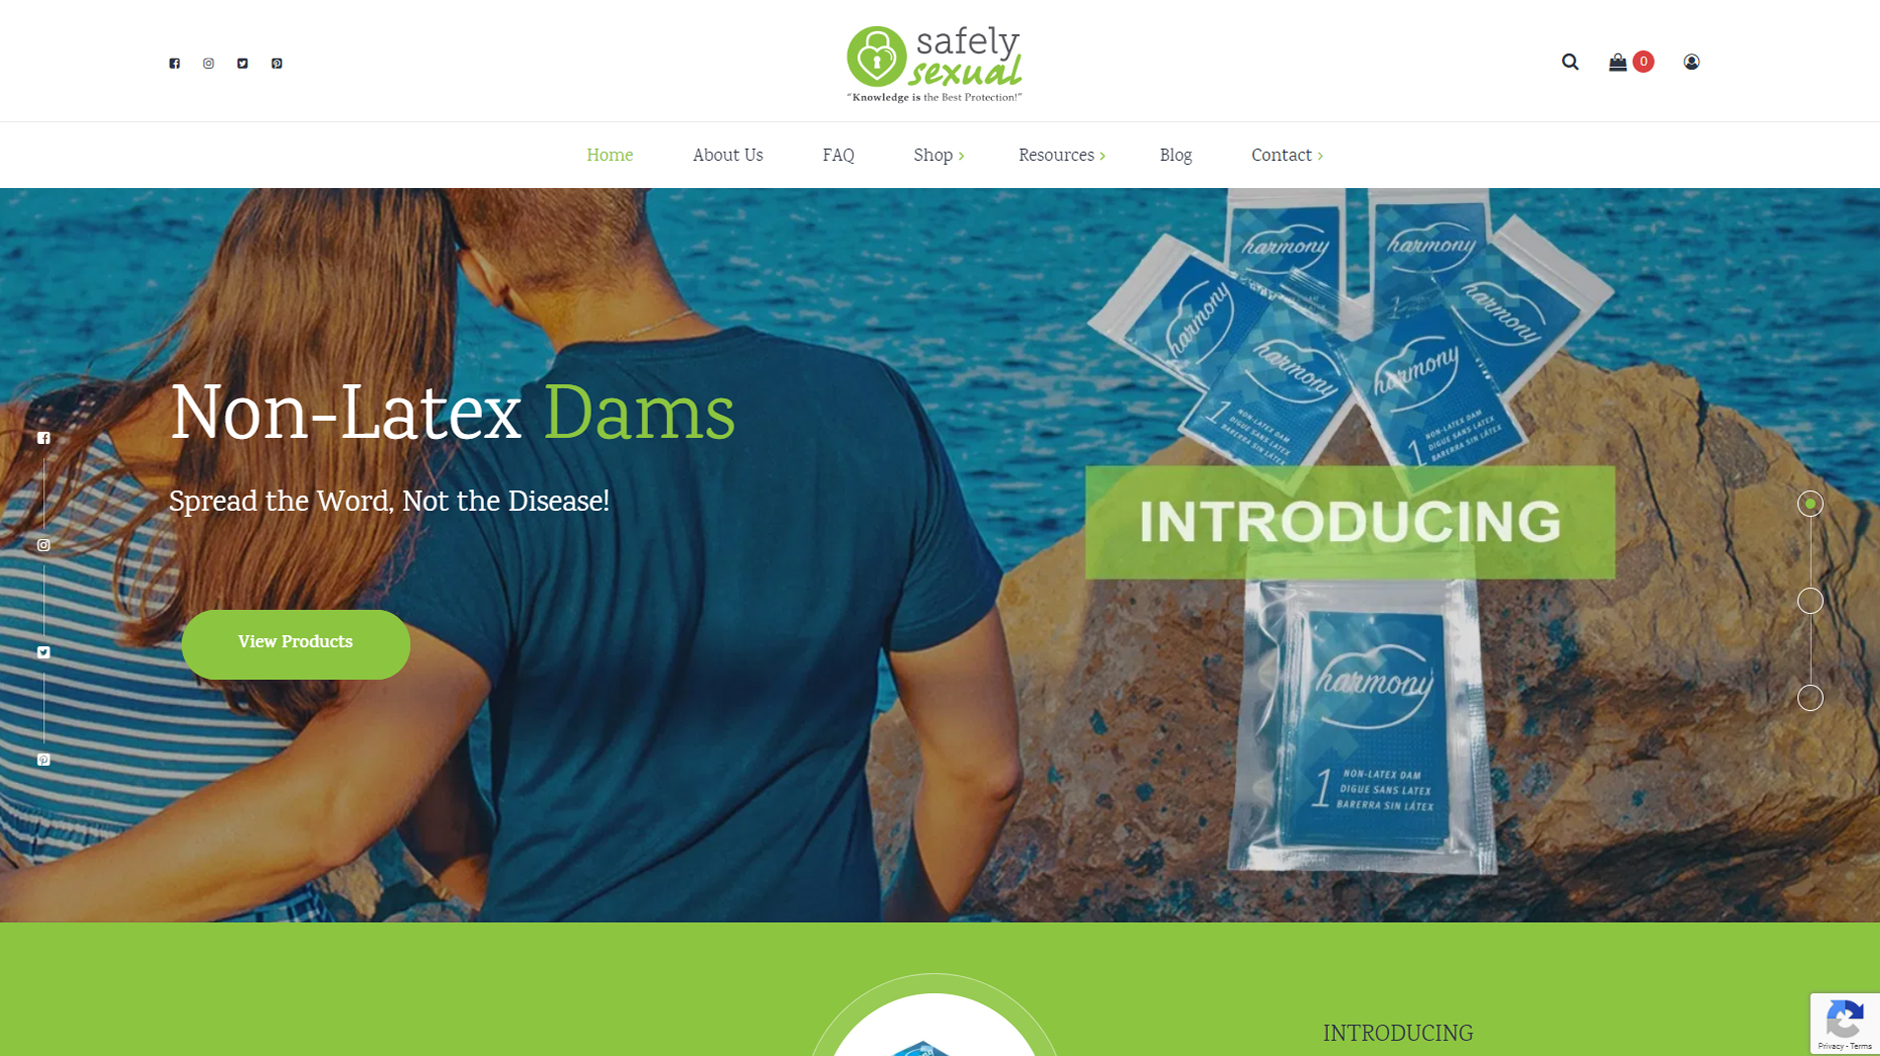 Website Project - Safely Sexual